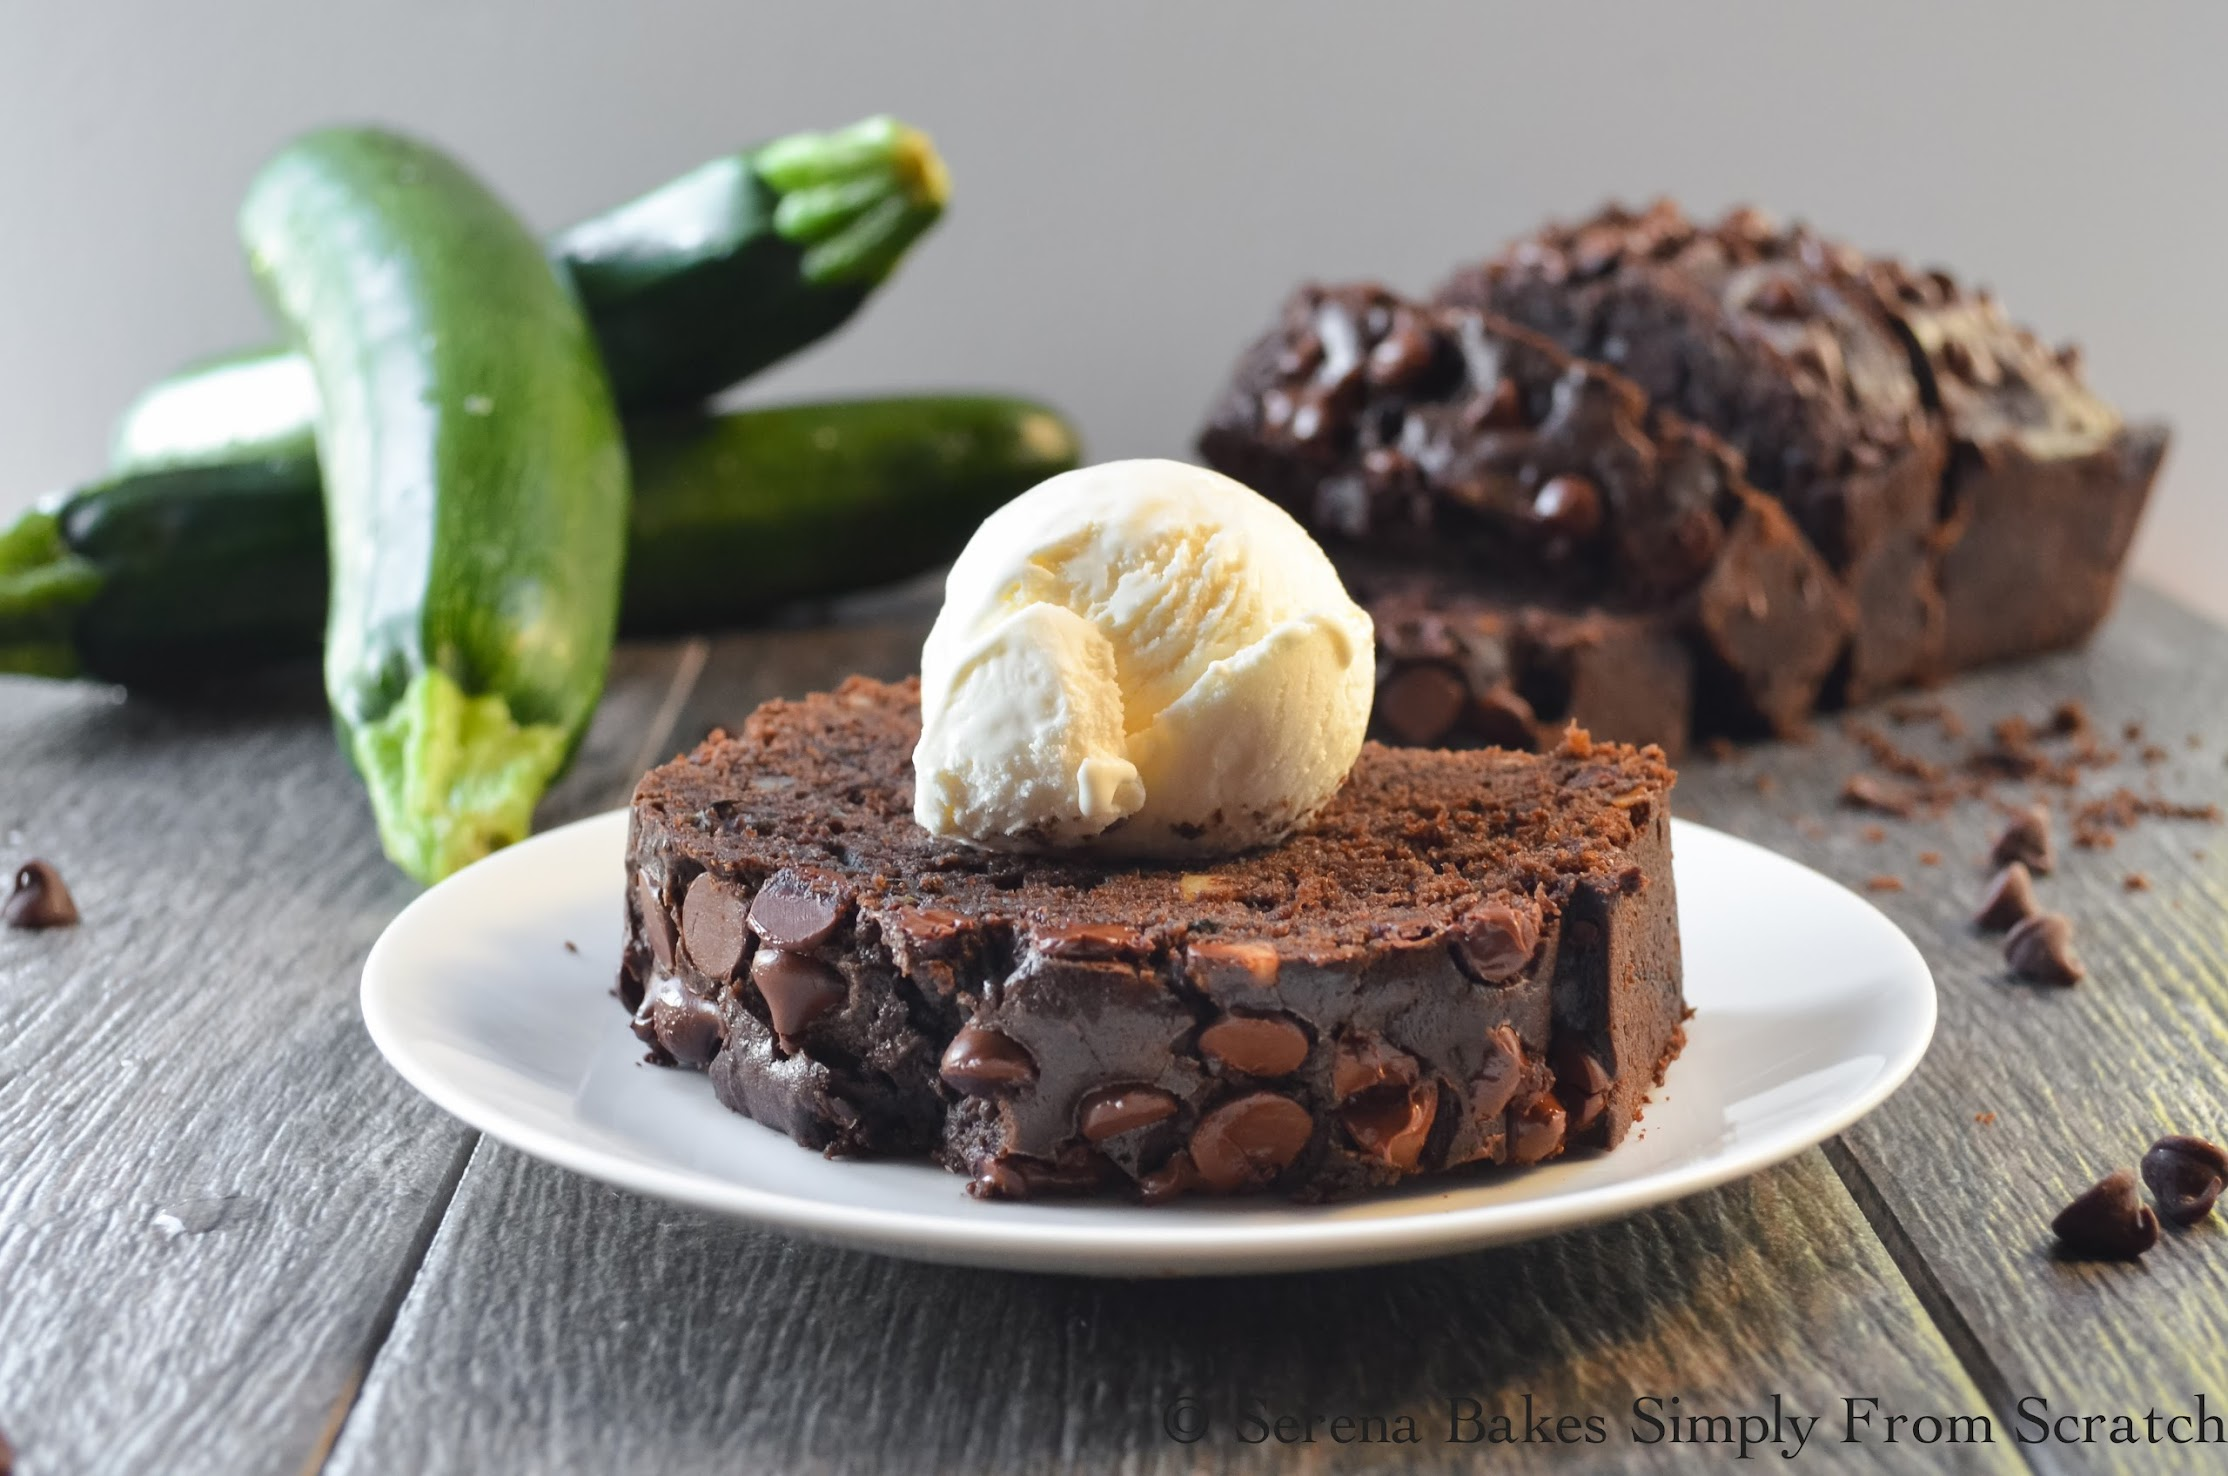 Double Chocolate Zucchini Bread. Perfect for breakfast, brunch, a snack or dessert! Take a loaf to the neighbors they'll love it!